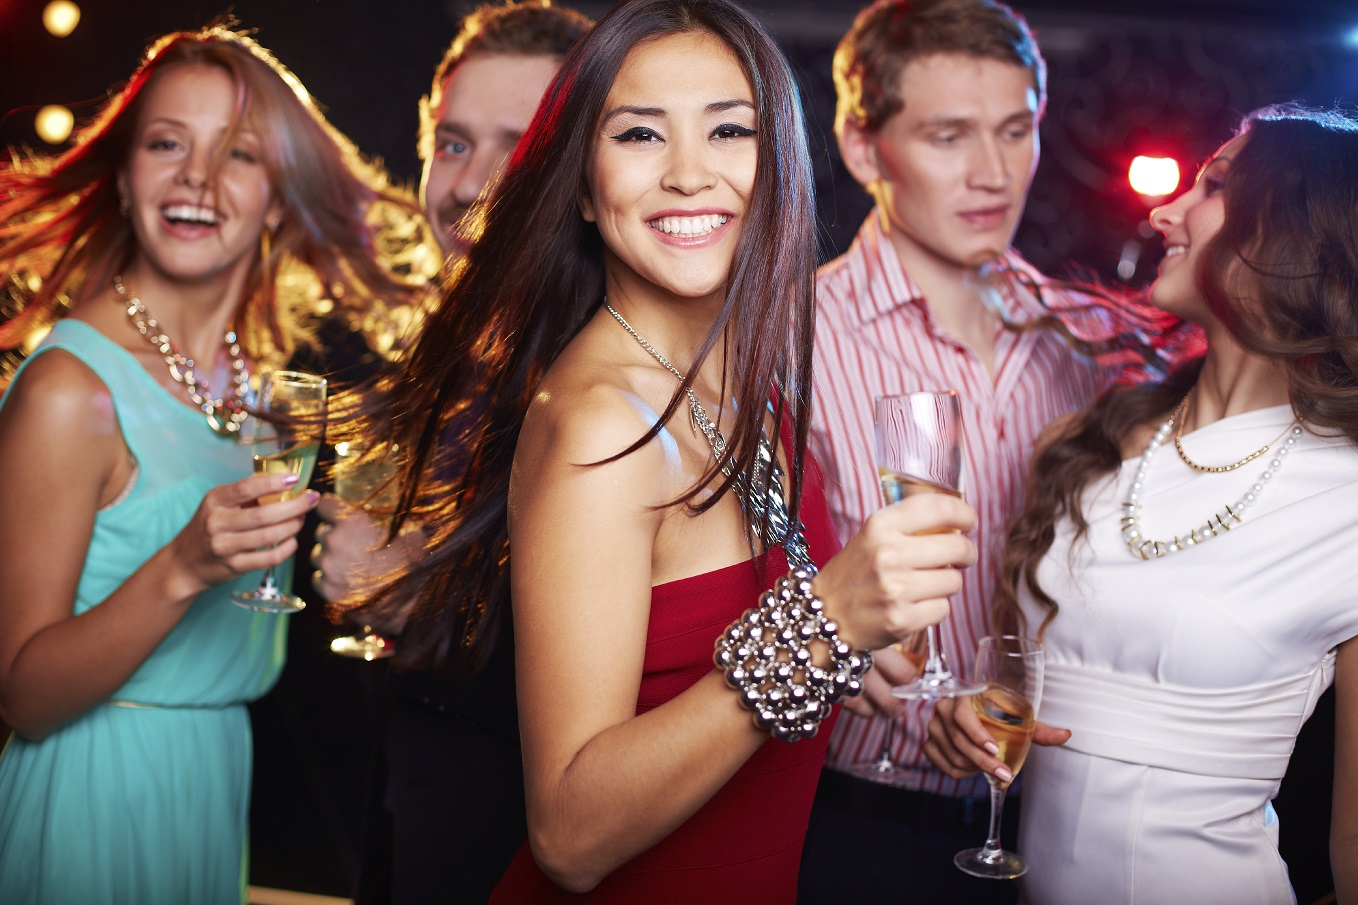 The Best Cities For Bachelorettes In Canada